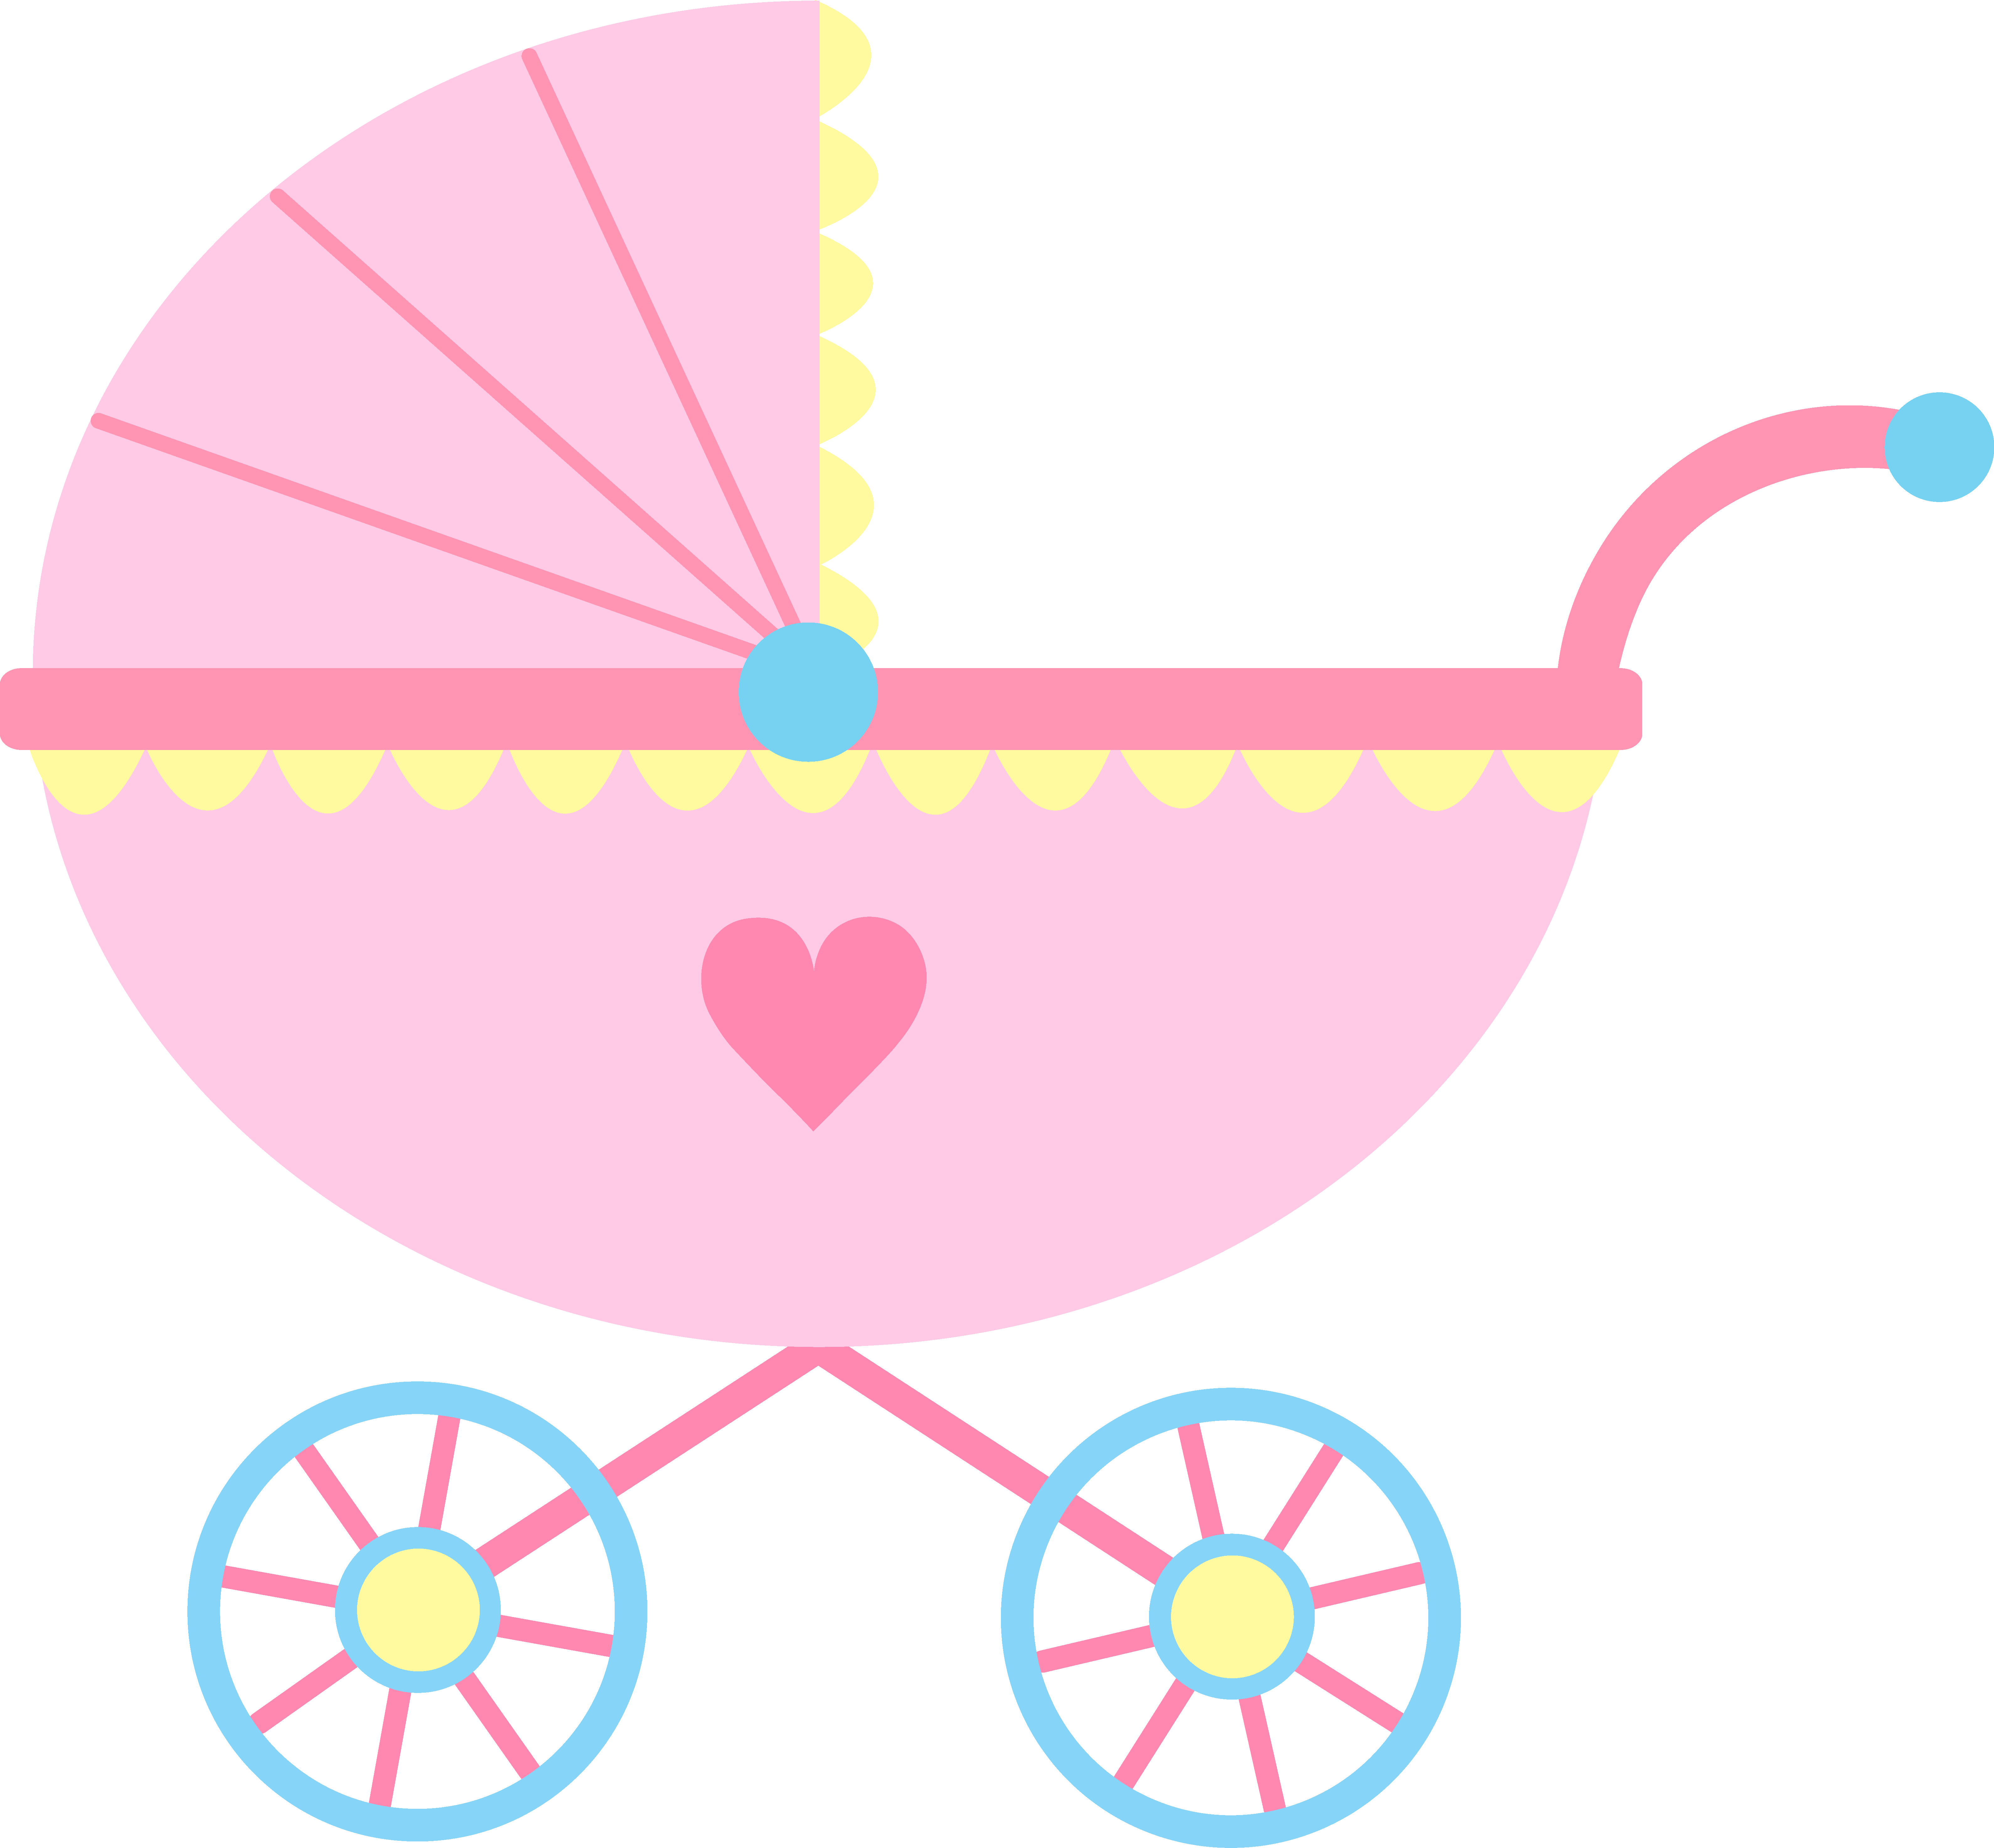 jpg freeuse library Pink baby kim sun. Carriage clipart frame.